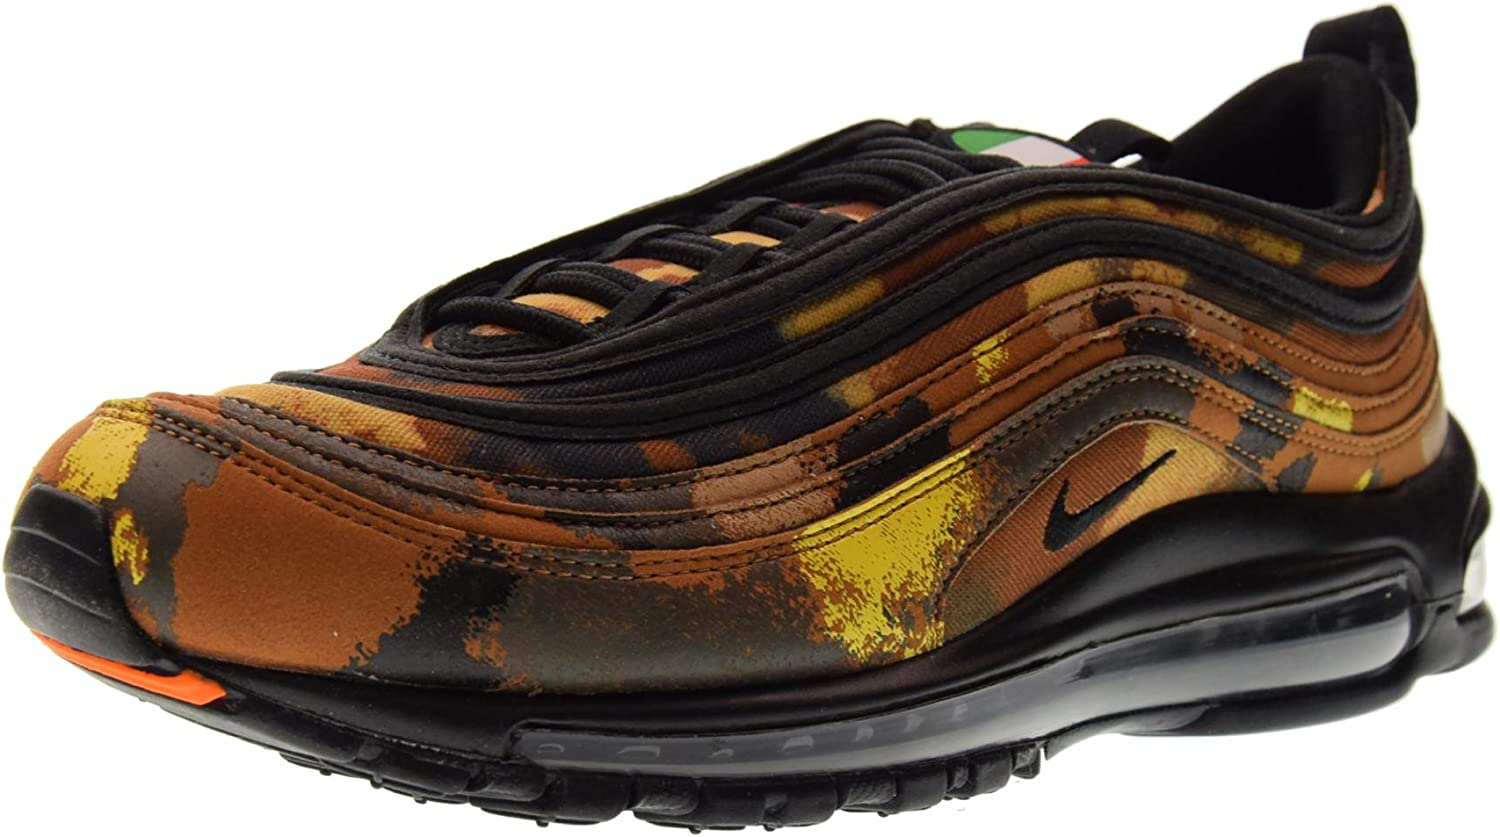 nike air max 97 premium country camo